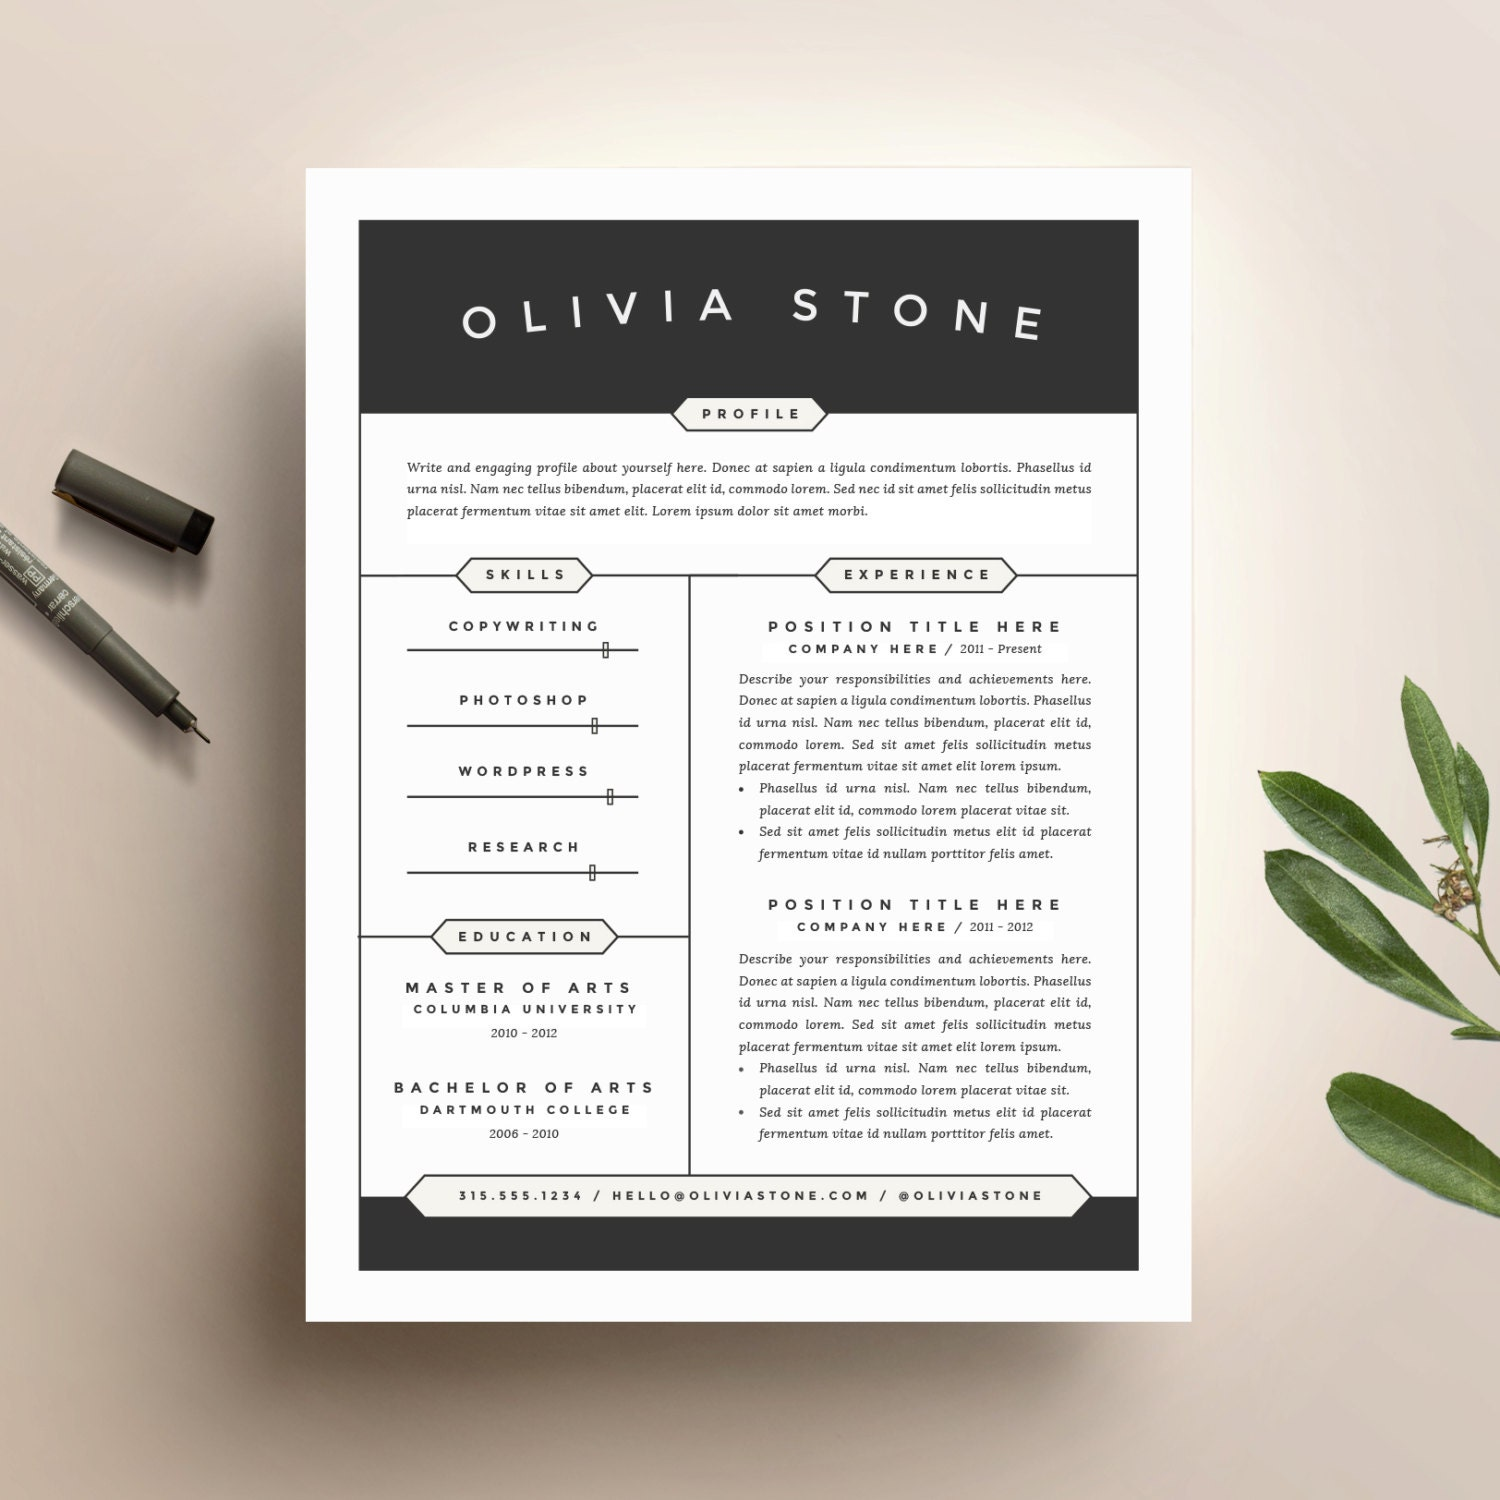 Best Resumes And Templates For Your Business   Ggec.co  Creative Cover Letters